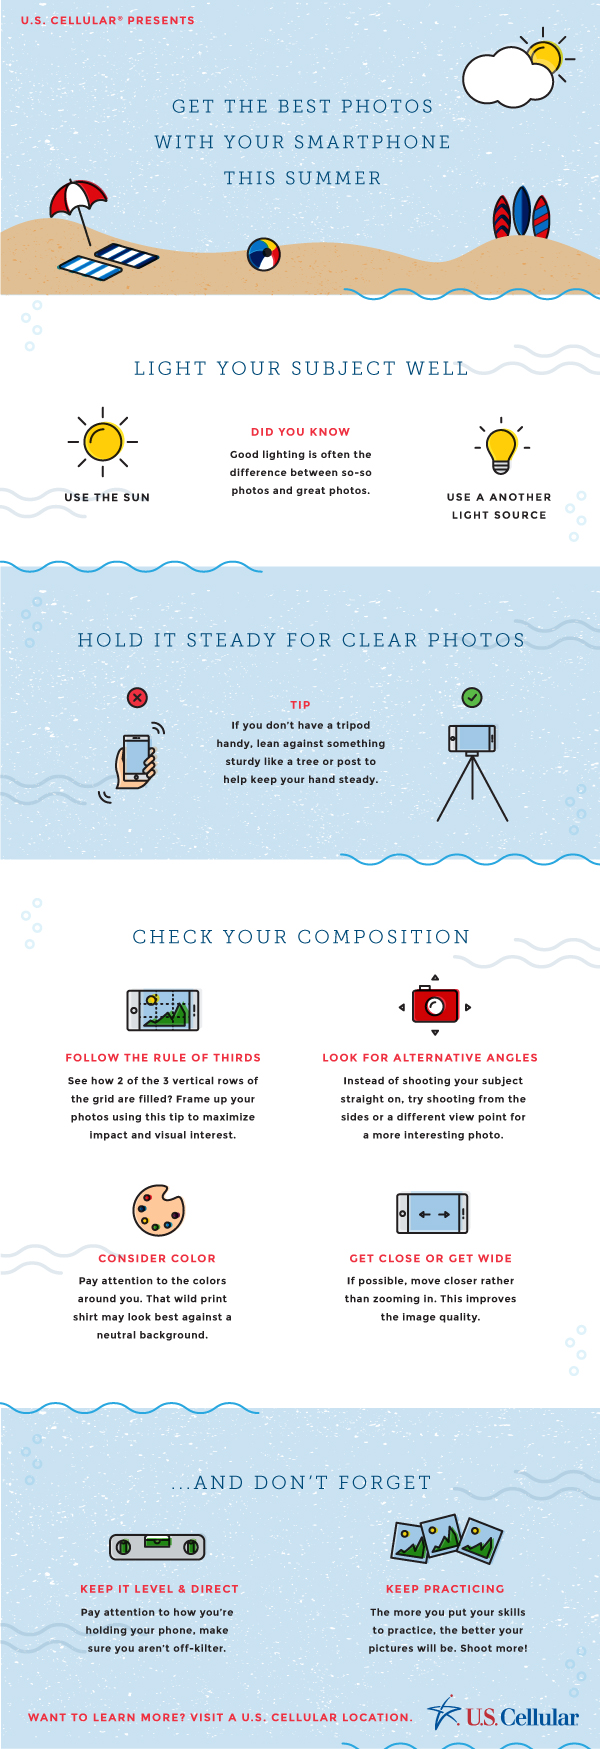 U.S. Cellular Smartphone Photography tips